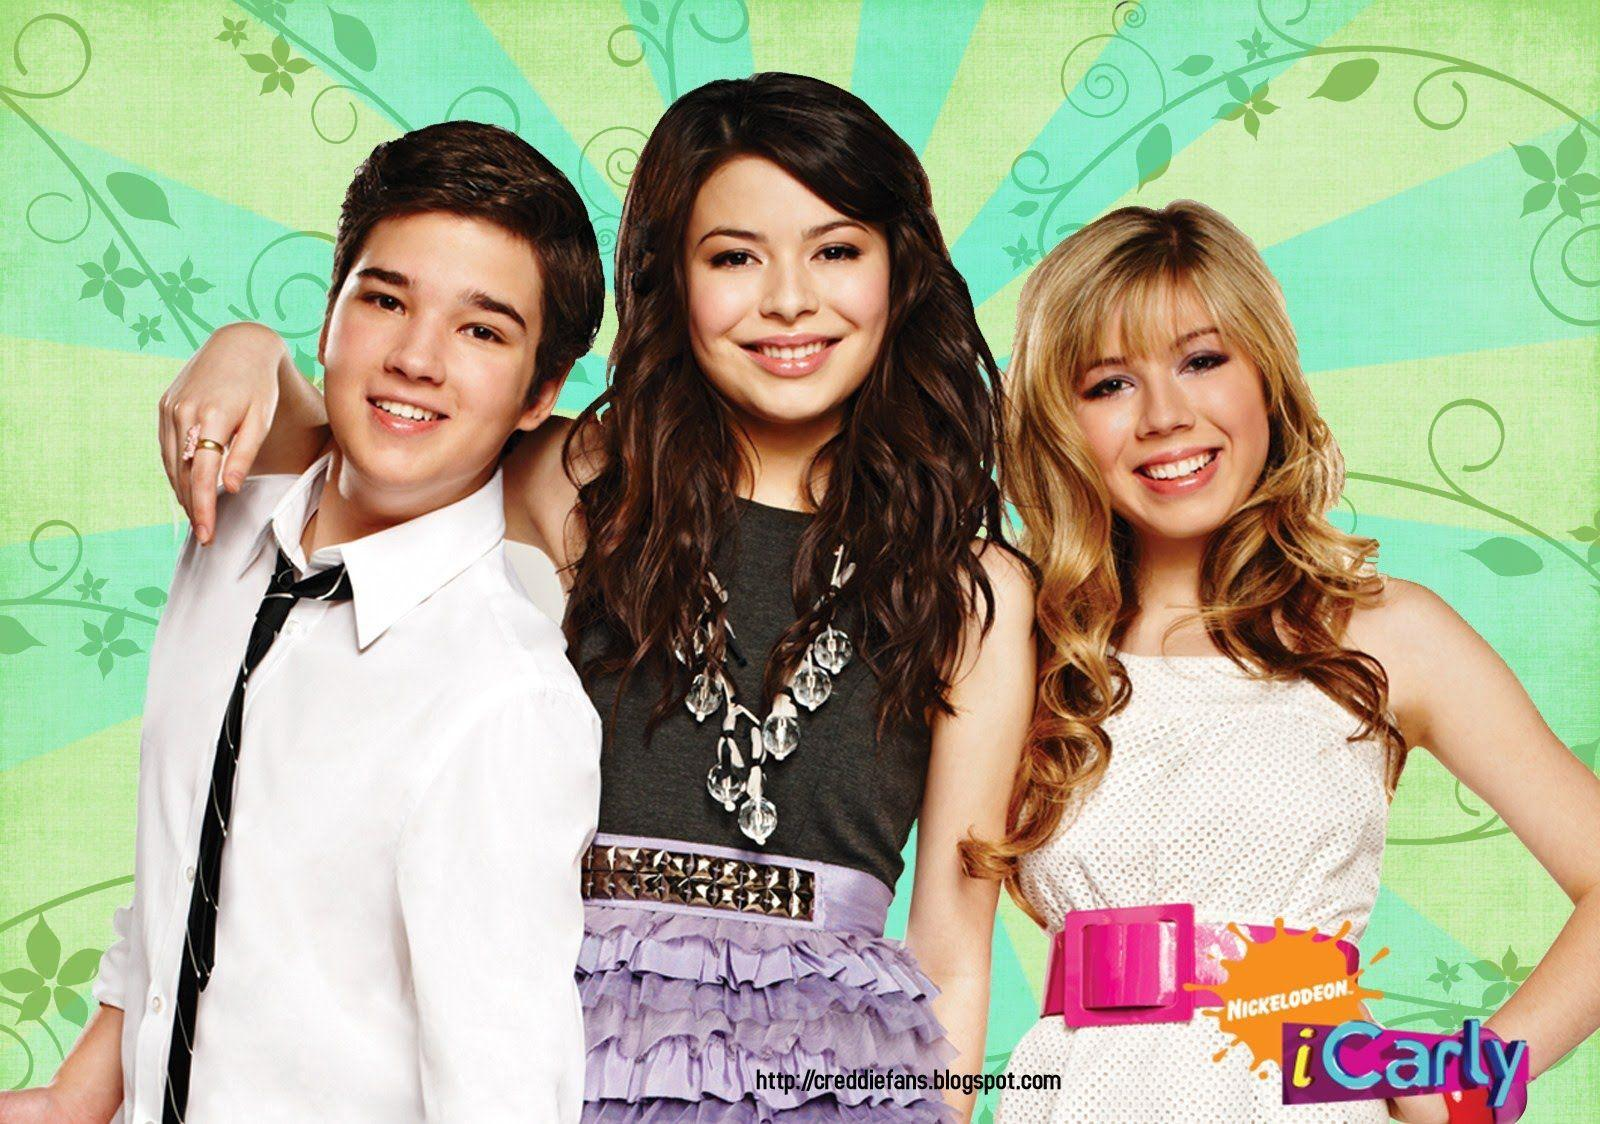 1600x1124 Icarly Wallpapers